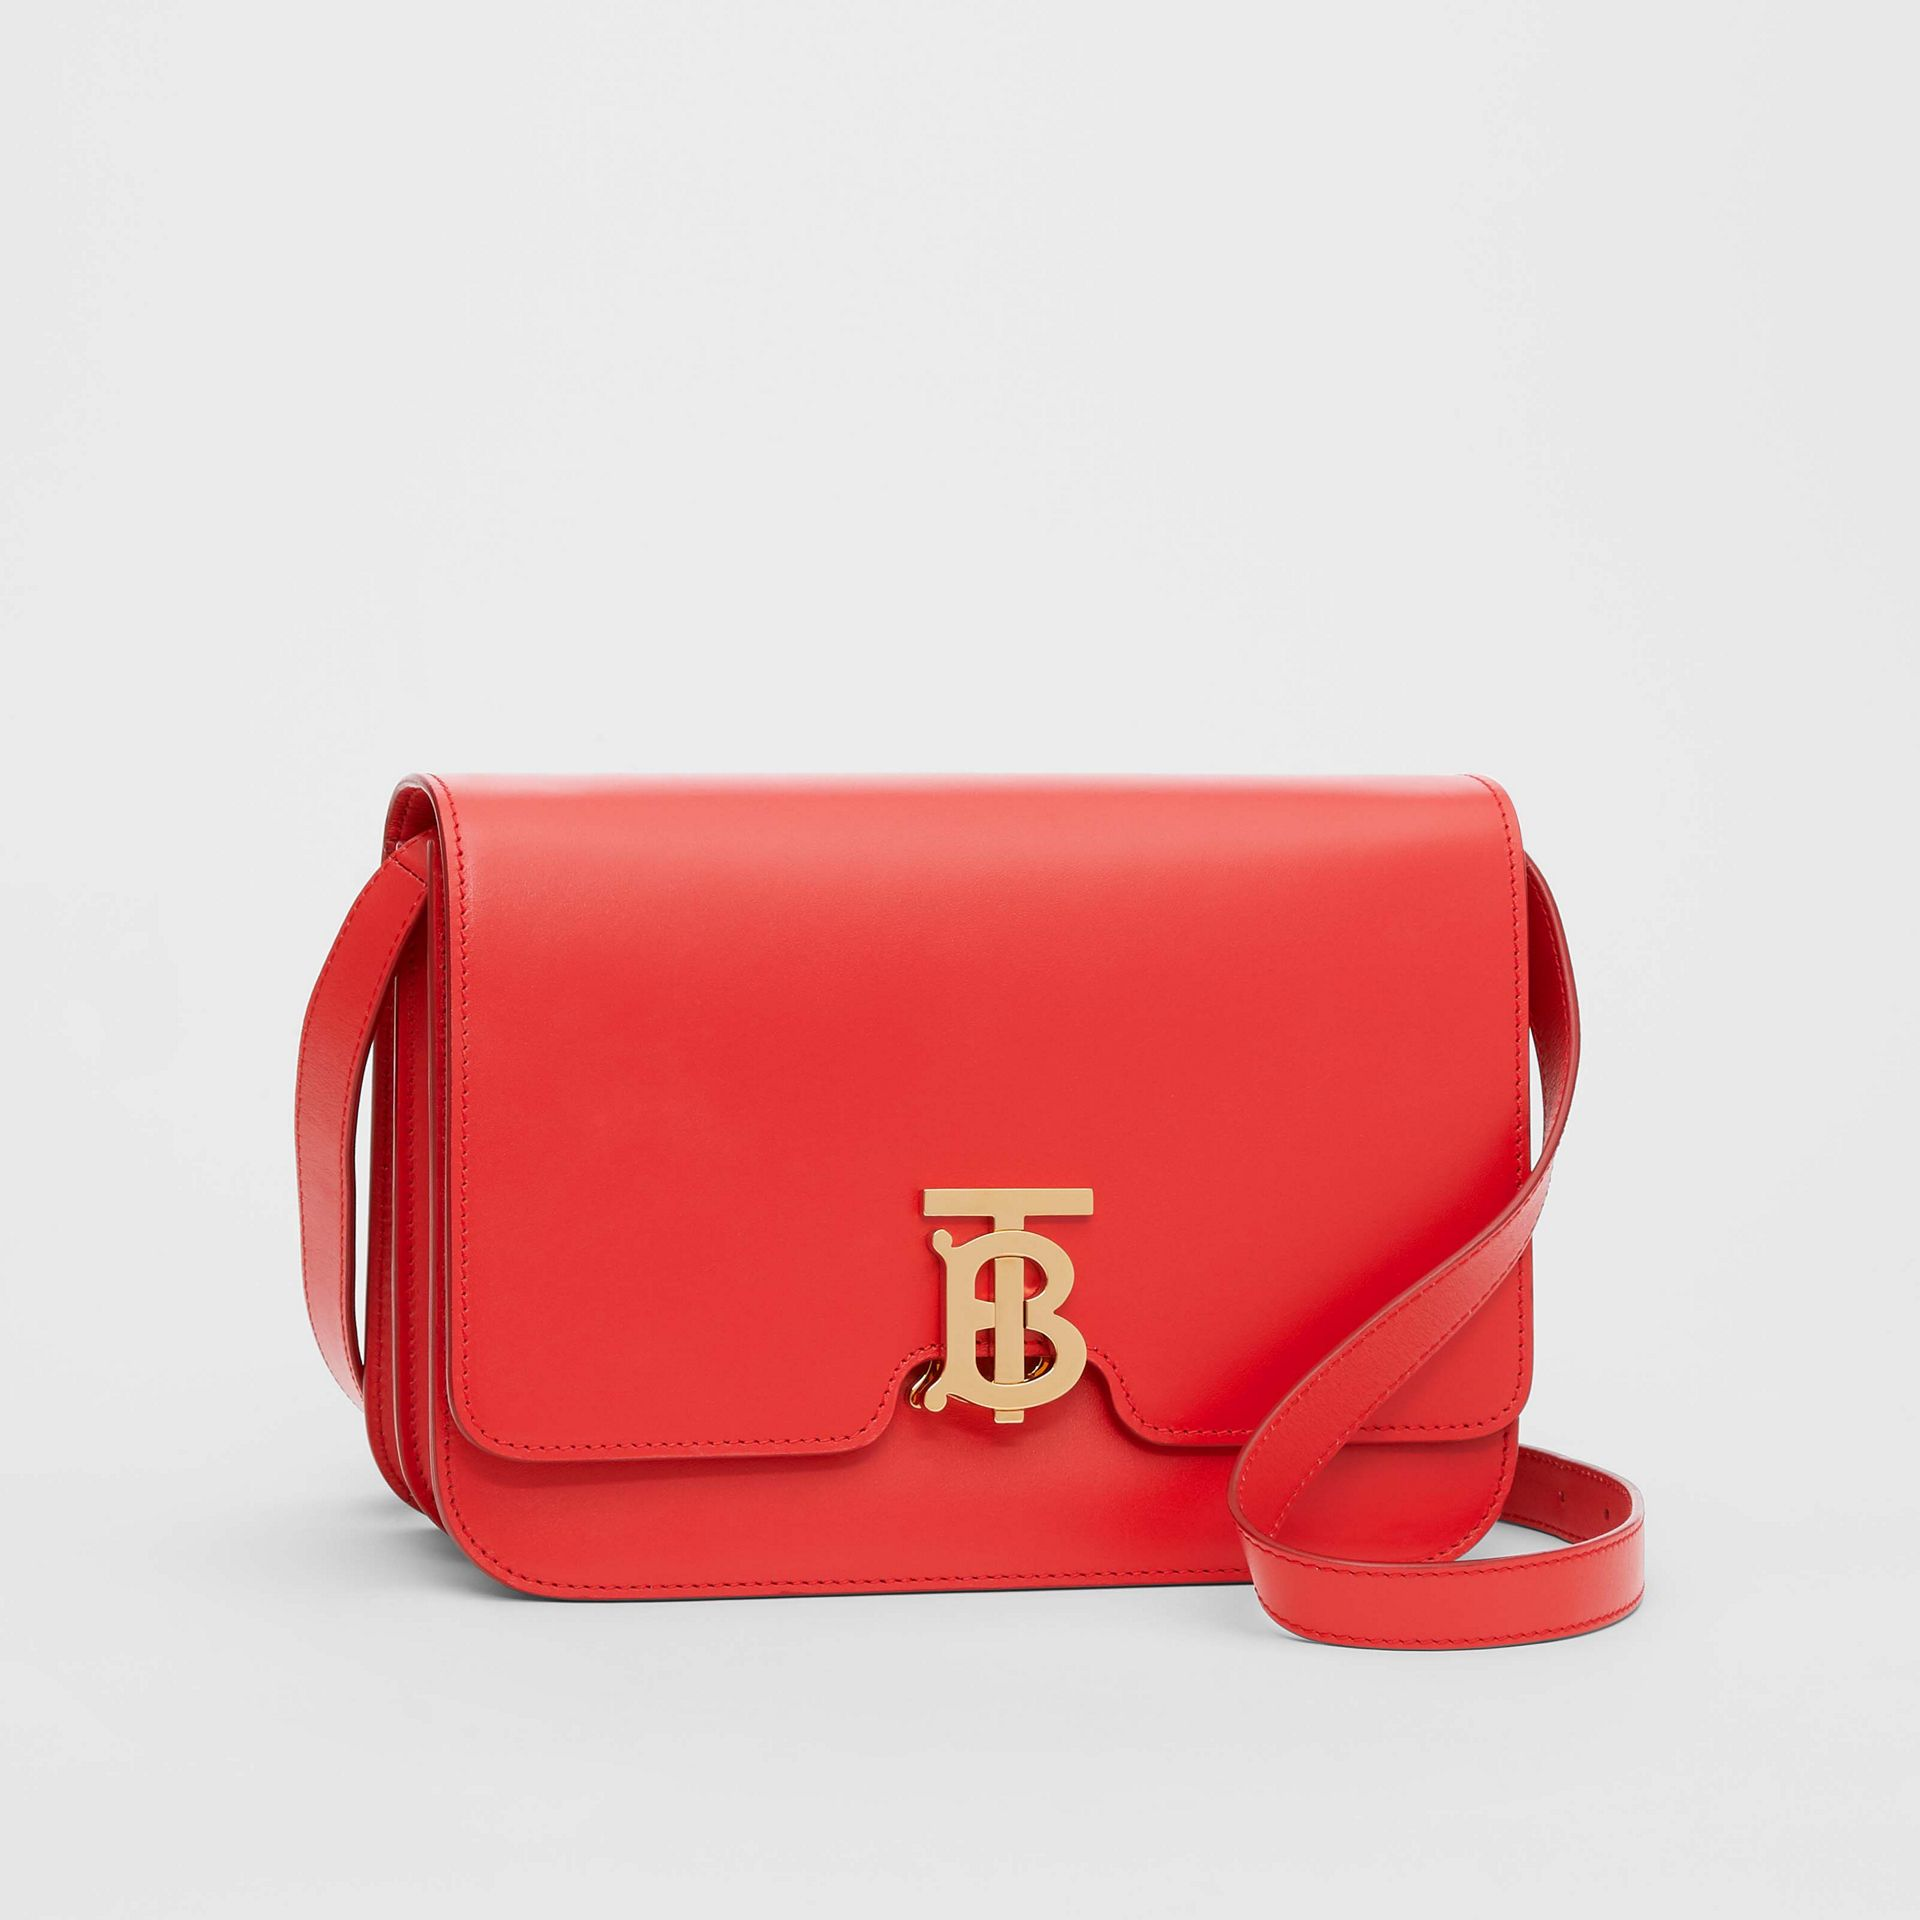 Medium Leather TB Bag in Bright Red - Women | Burberry United States - gallery image 6